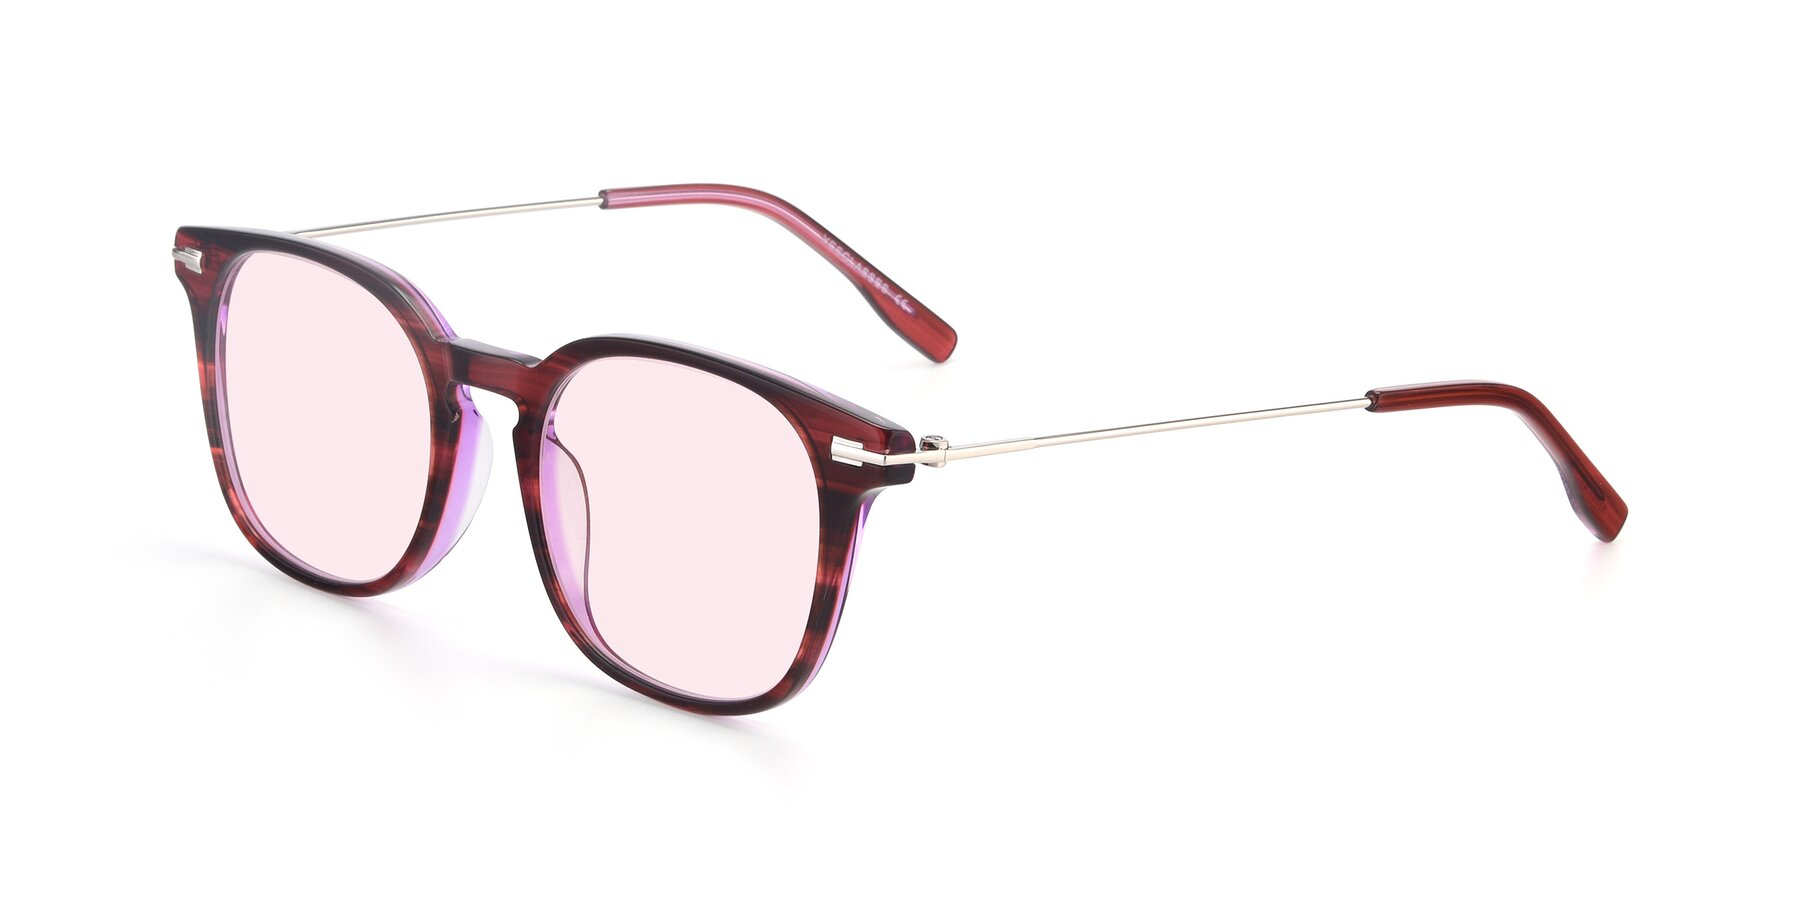 Angle of 17711 in Wine with Light Pink Tinted Lenses